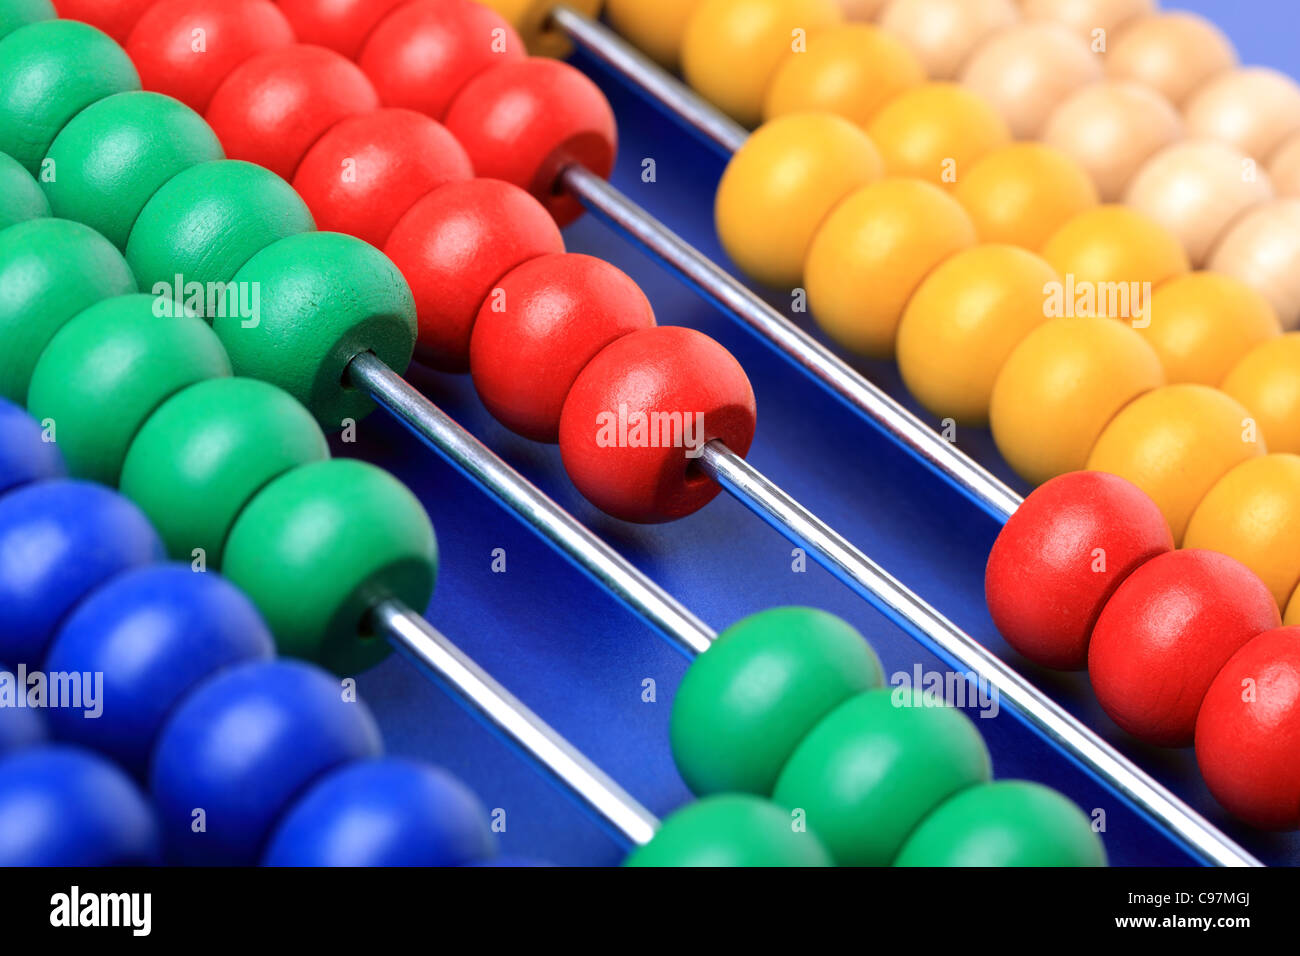 Abacus with coloured beads - Stock Image